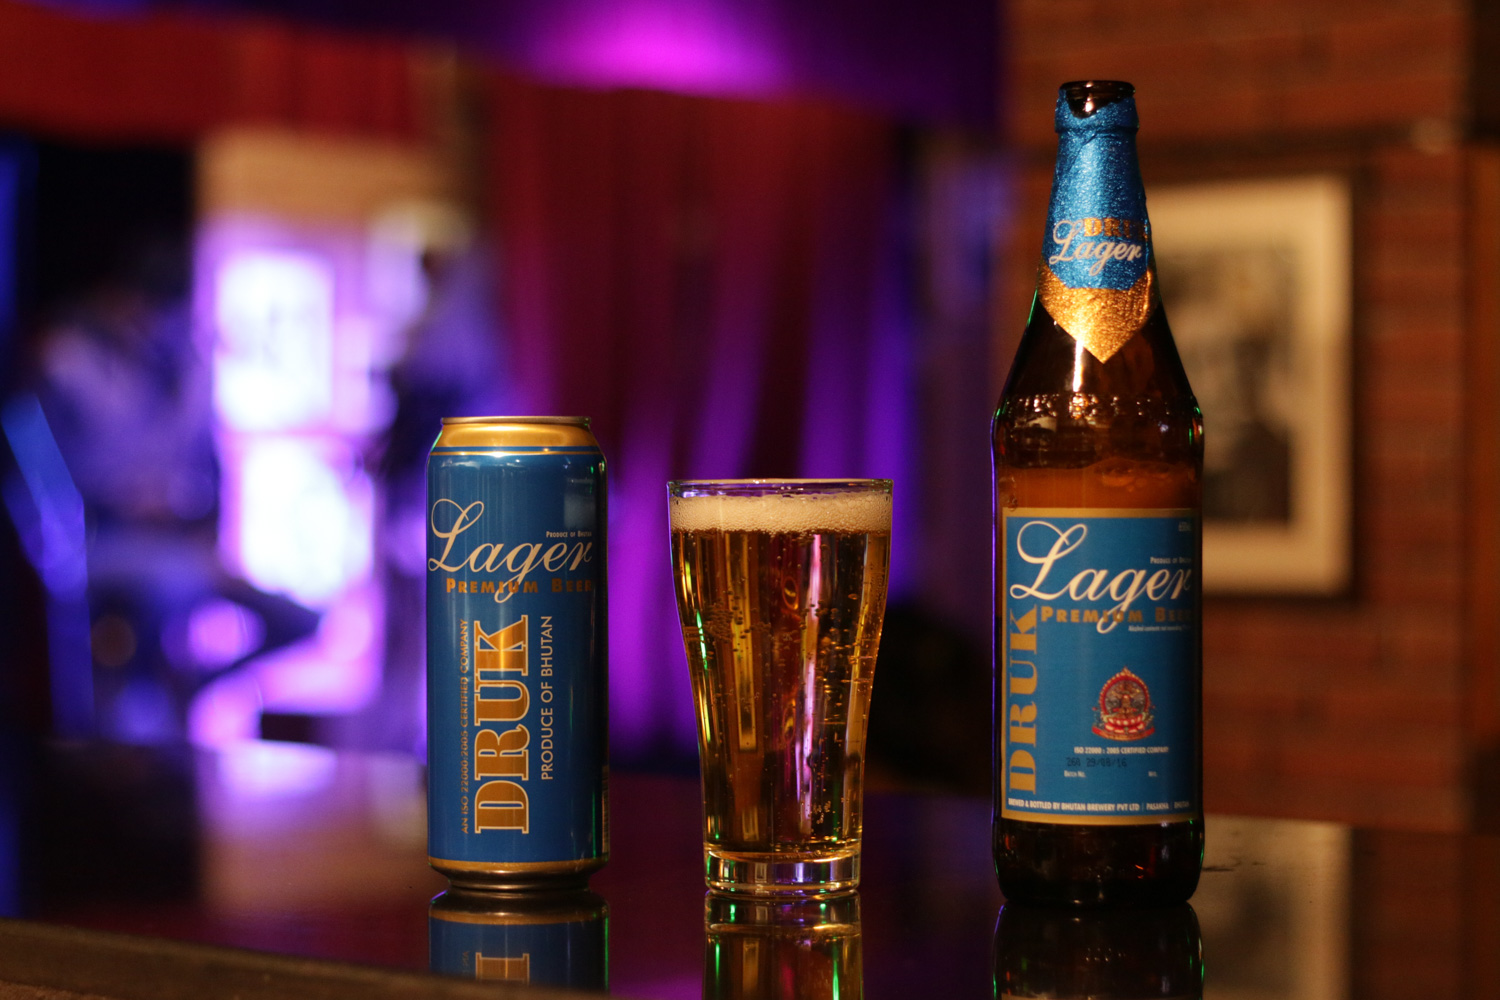 Druk Lager Premium comes in bottle and can